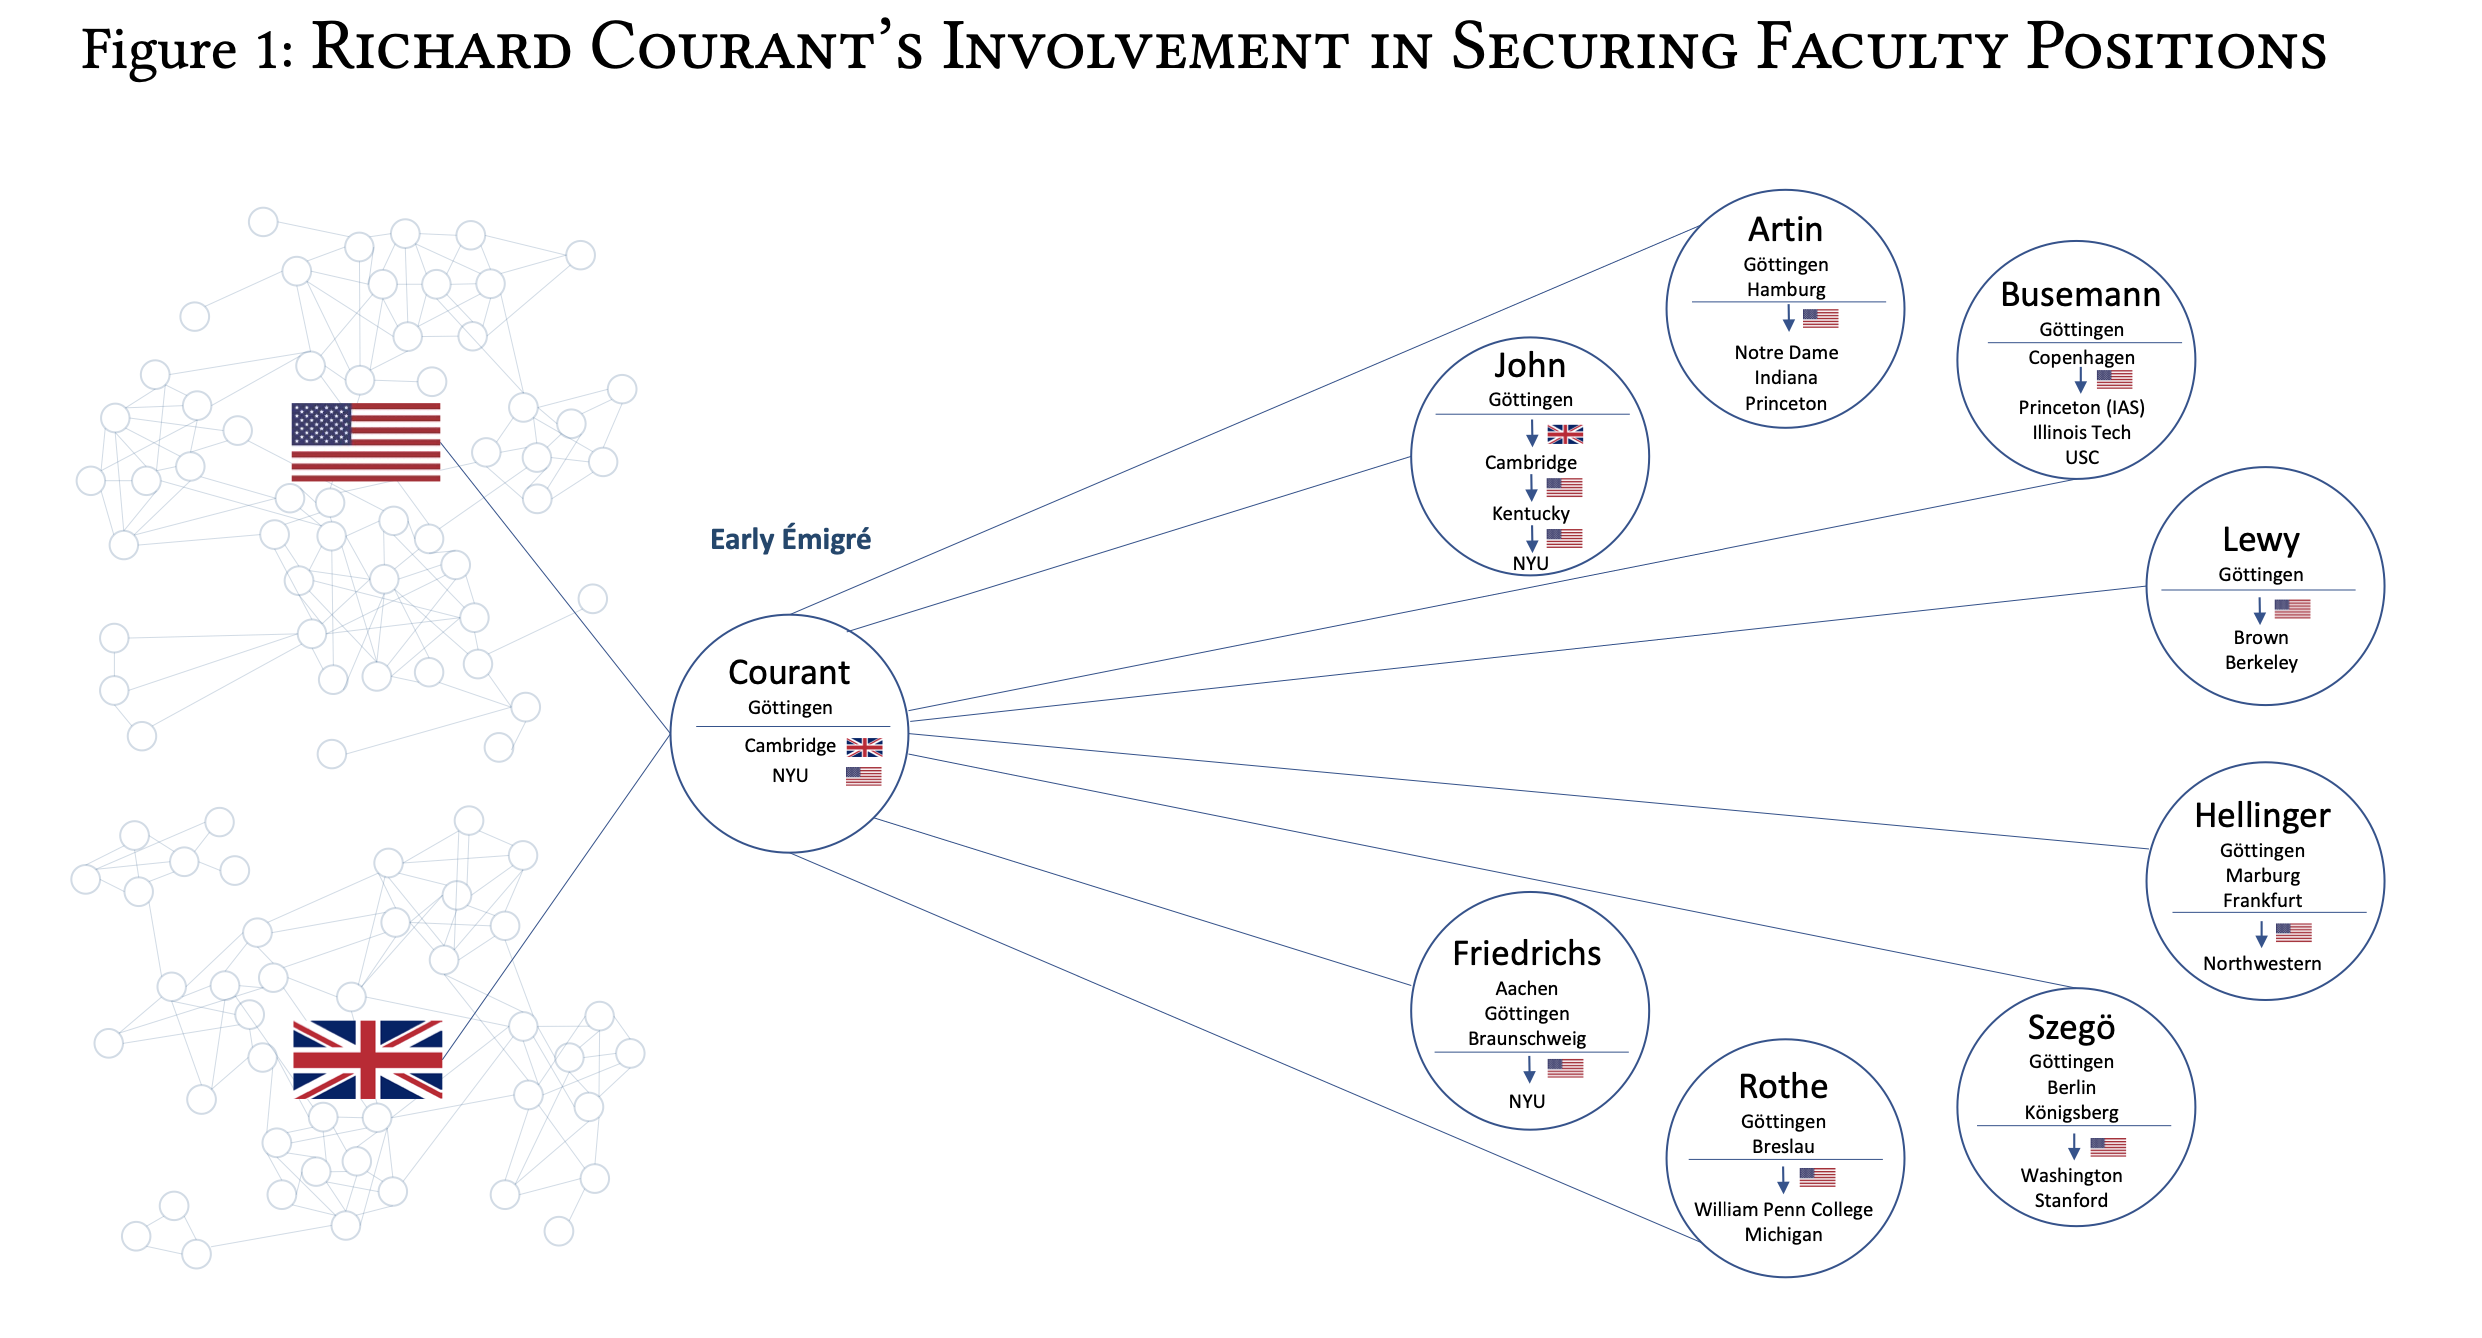 Figure 1: Richard Courant's involvement in securing faculty positions